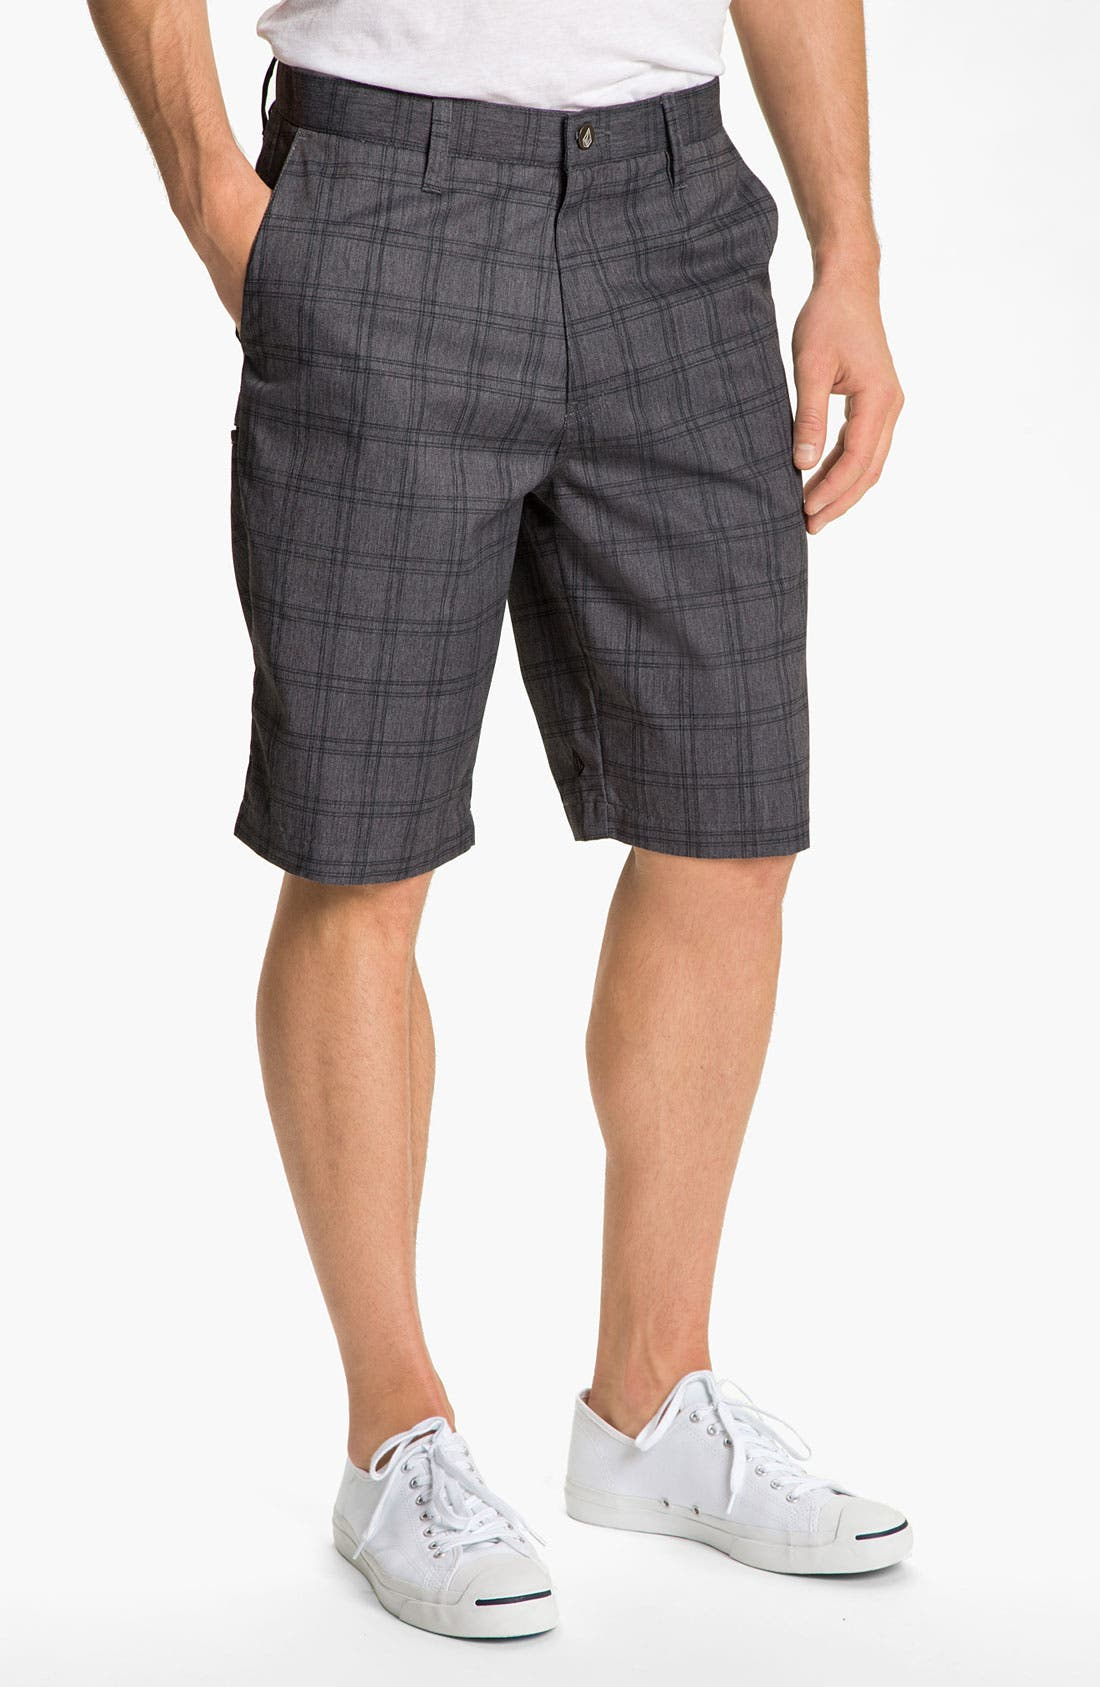 Alternate Image 1 Selected - Volcom Chino Shorts (Online Only)